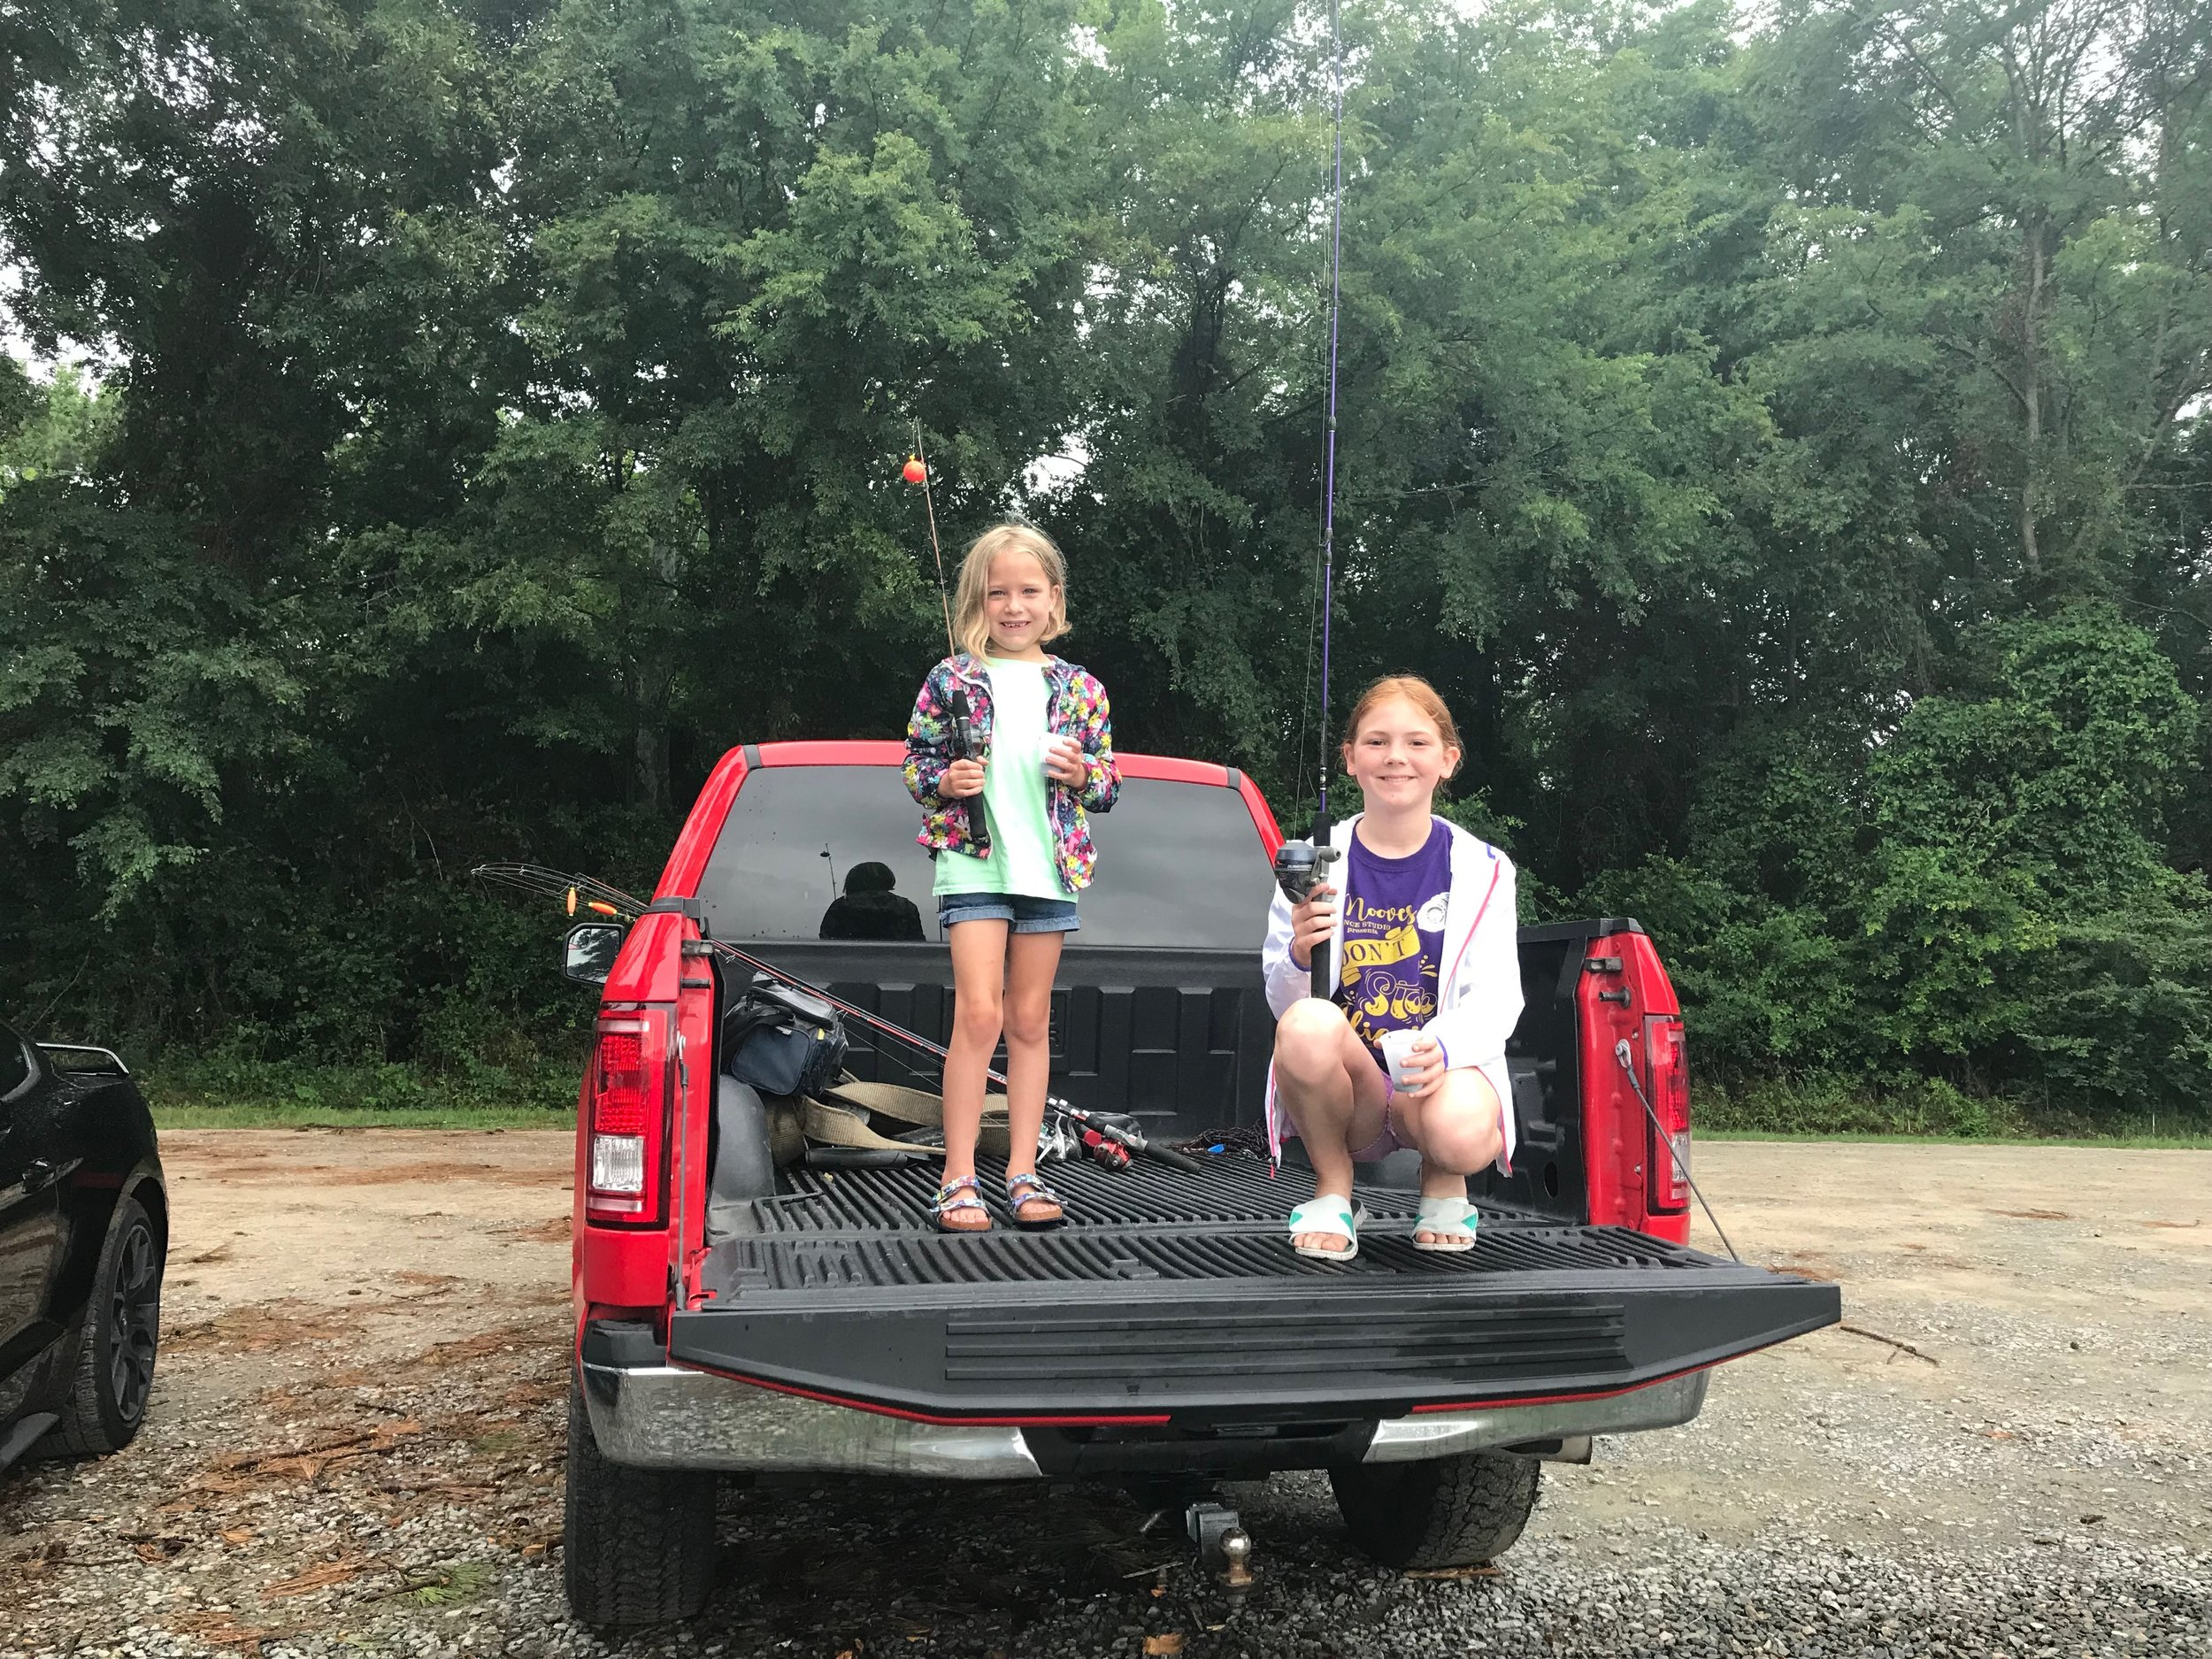 Natalie Hartley, 6, and Addison Jones, 10, had a great time. Photo by Kristy Bock / Neuse News